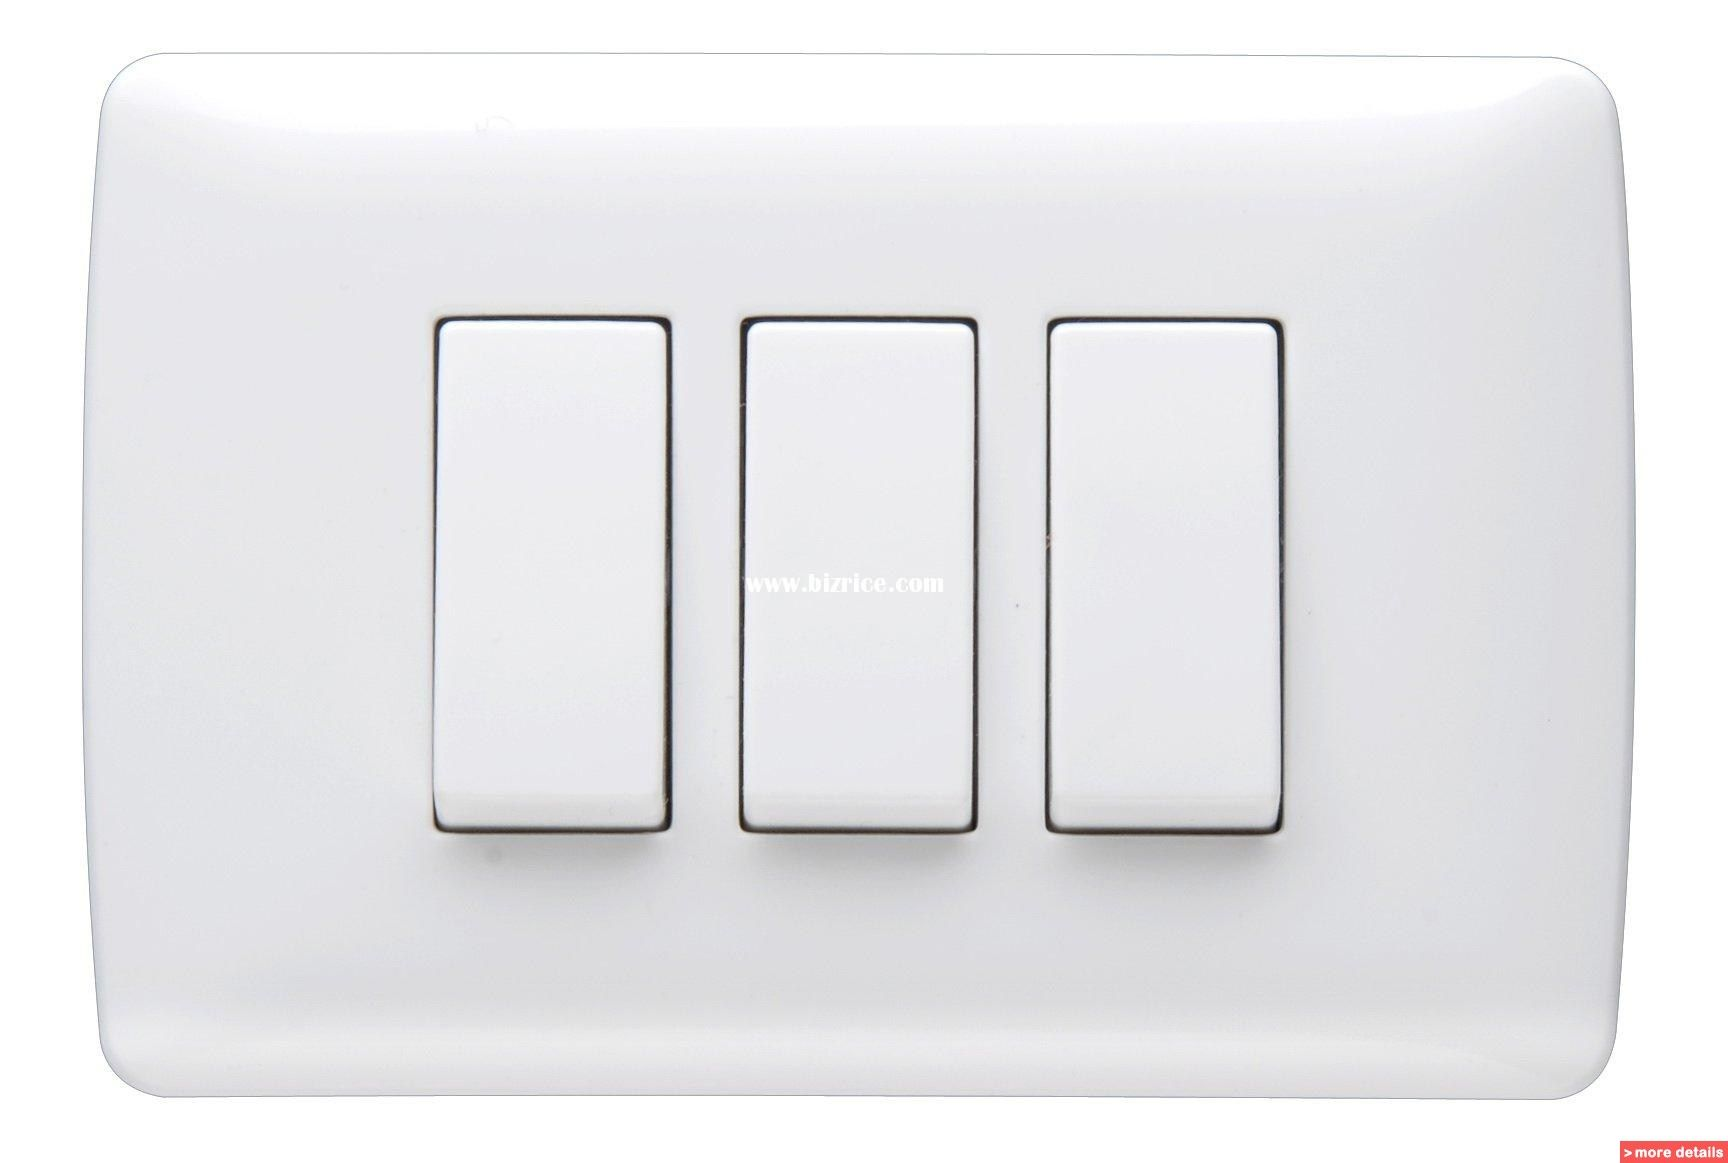 Pin by Hunter Luo on Wall Switch | Pinterest | Walls